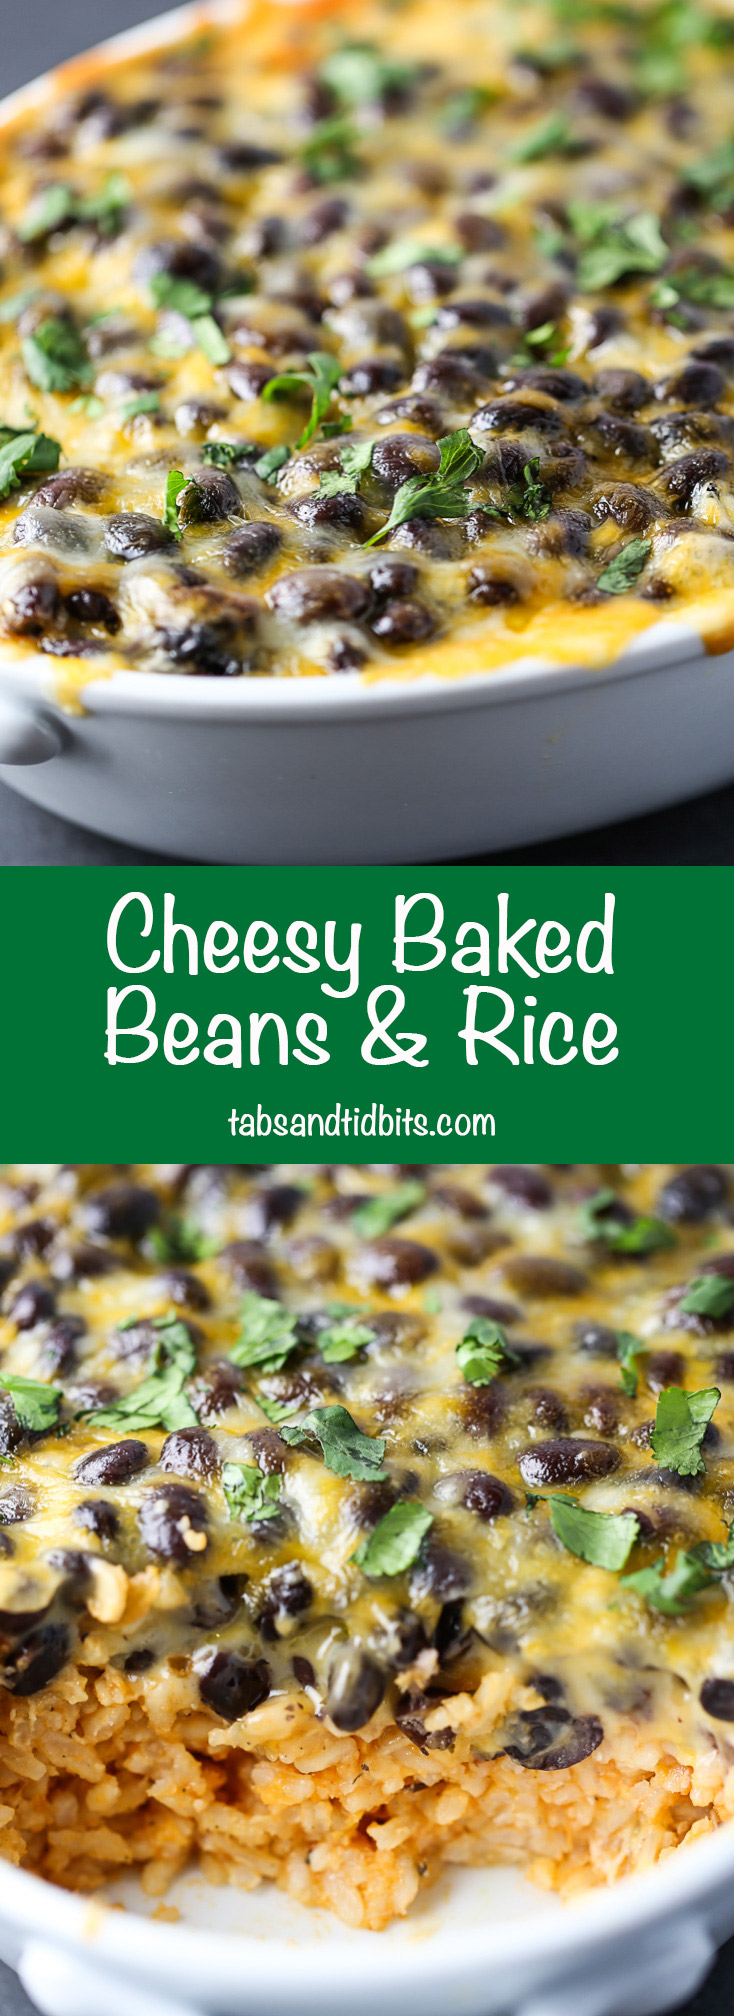 Cheesy Baked Beans & Rice - A quick and delicious meatless dish with salsa infused rice covered in beans and cheese.